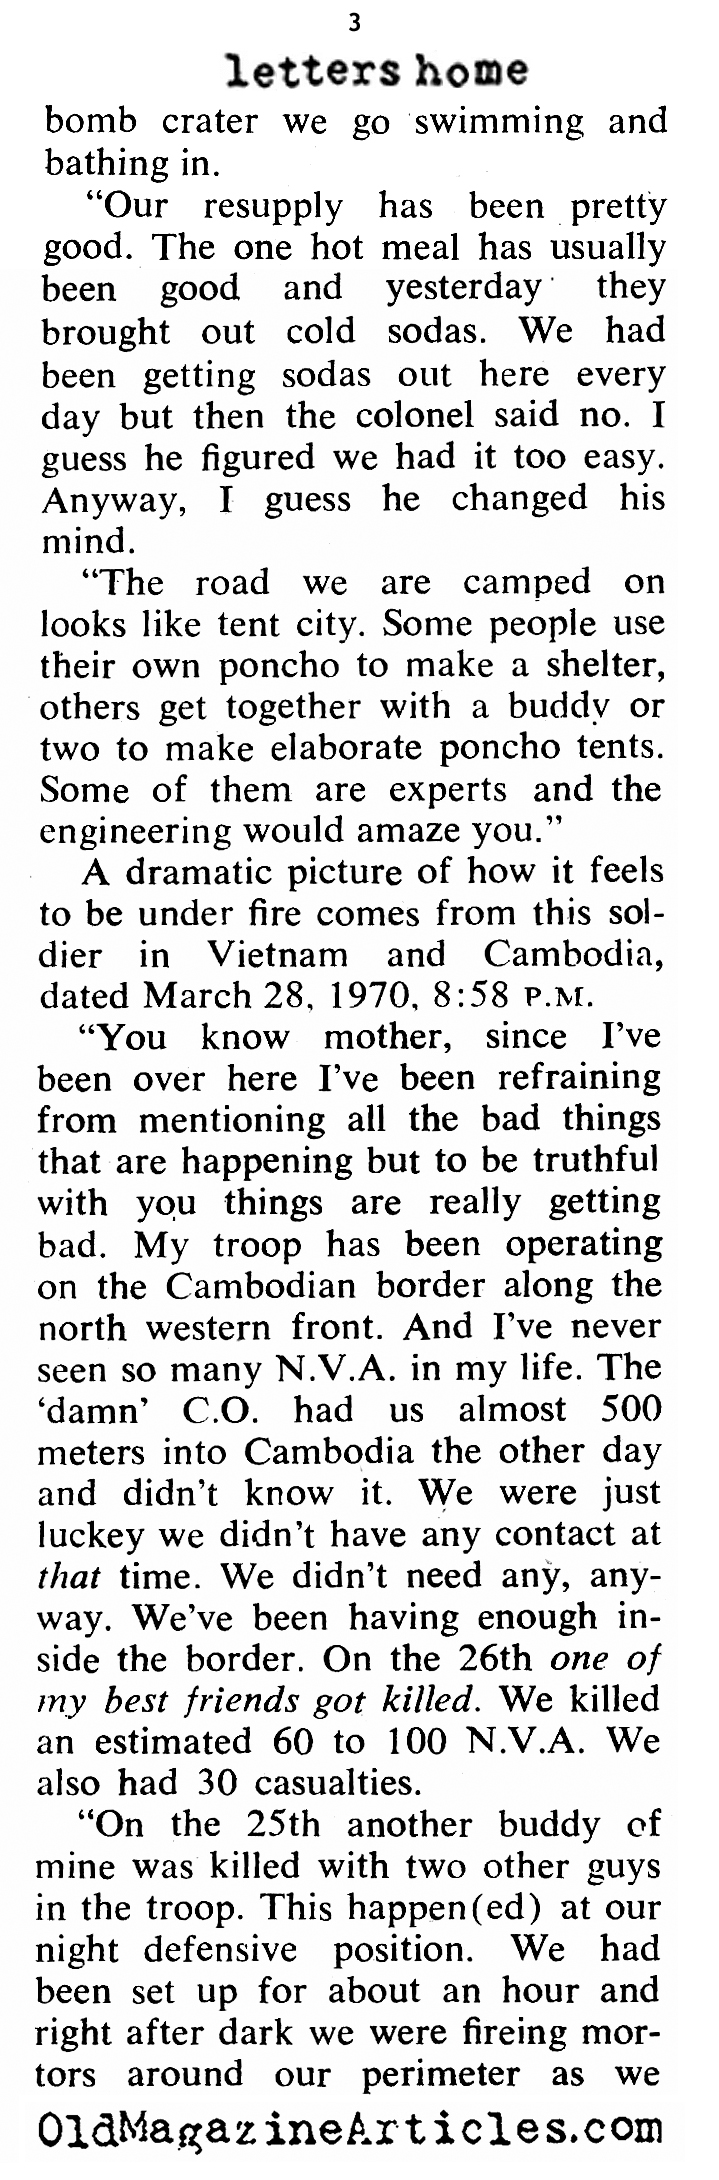 More Letters From Vietnam (Coronet Magazine, 1970)